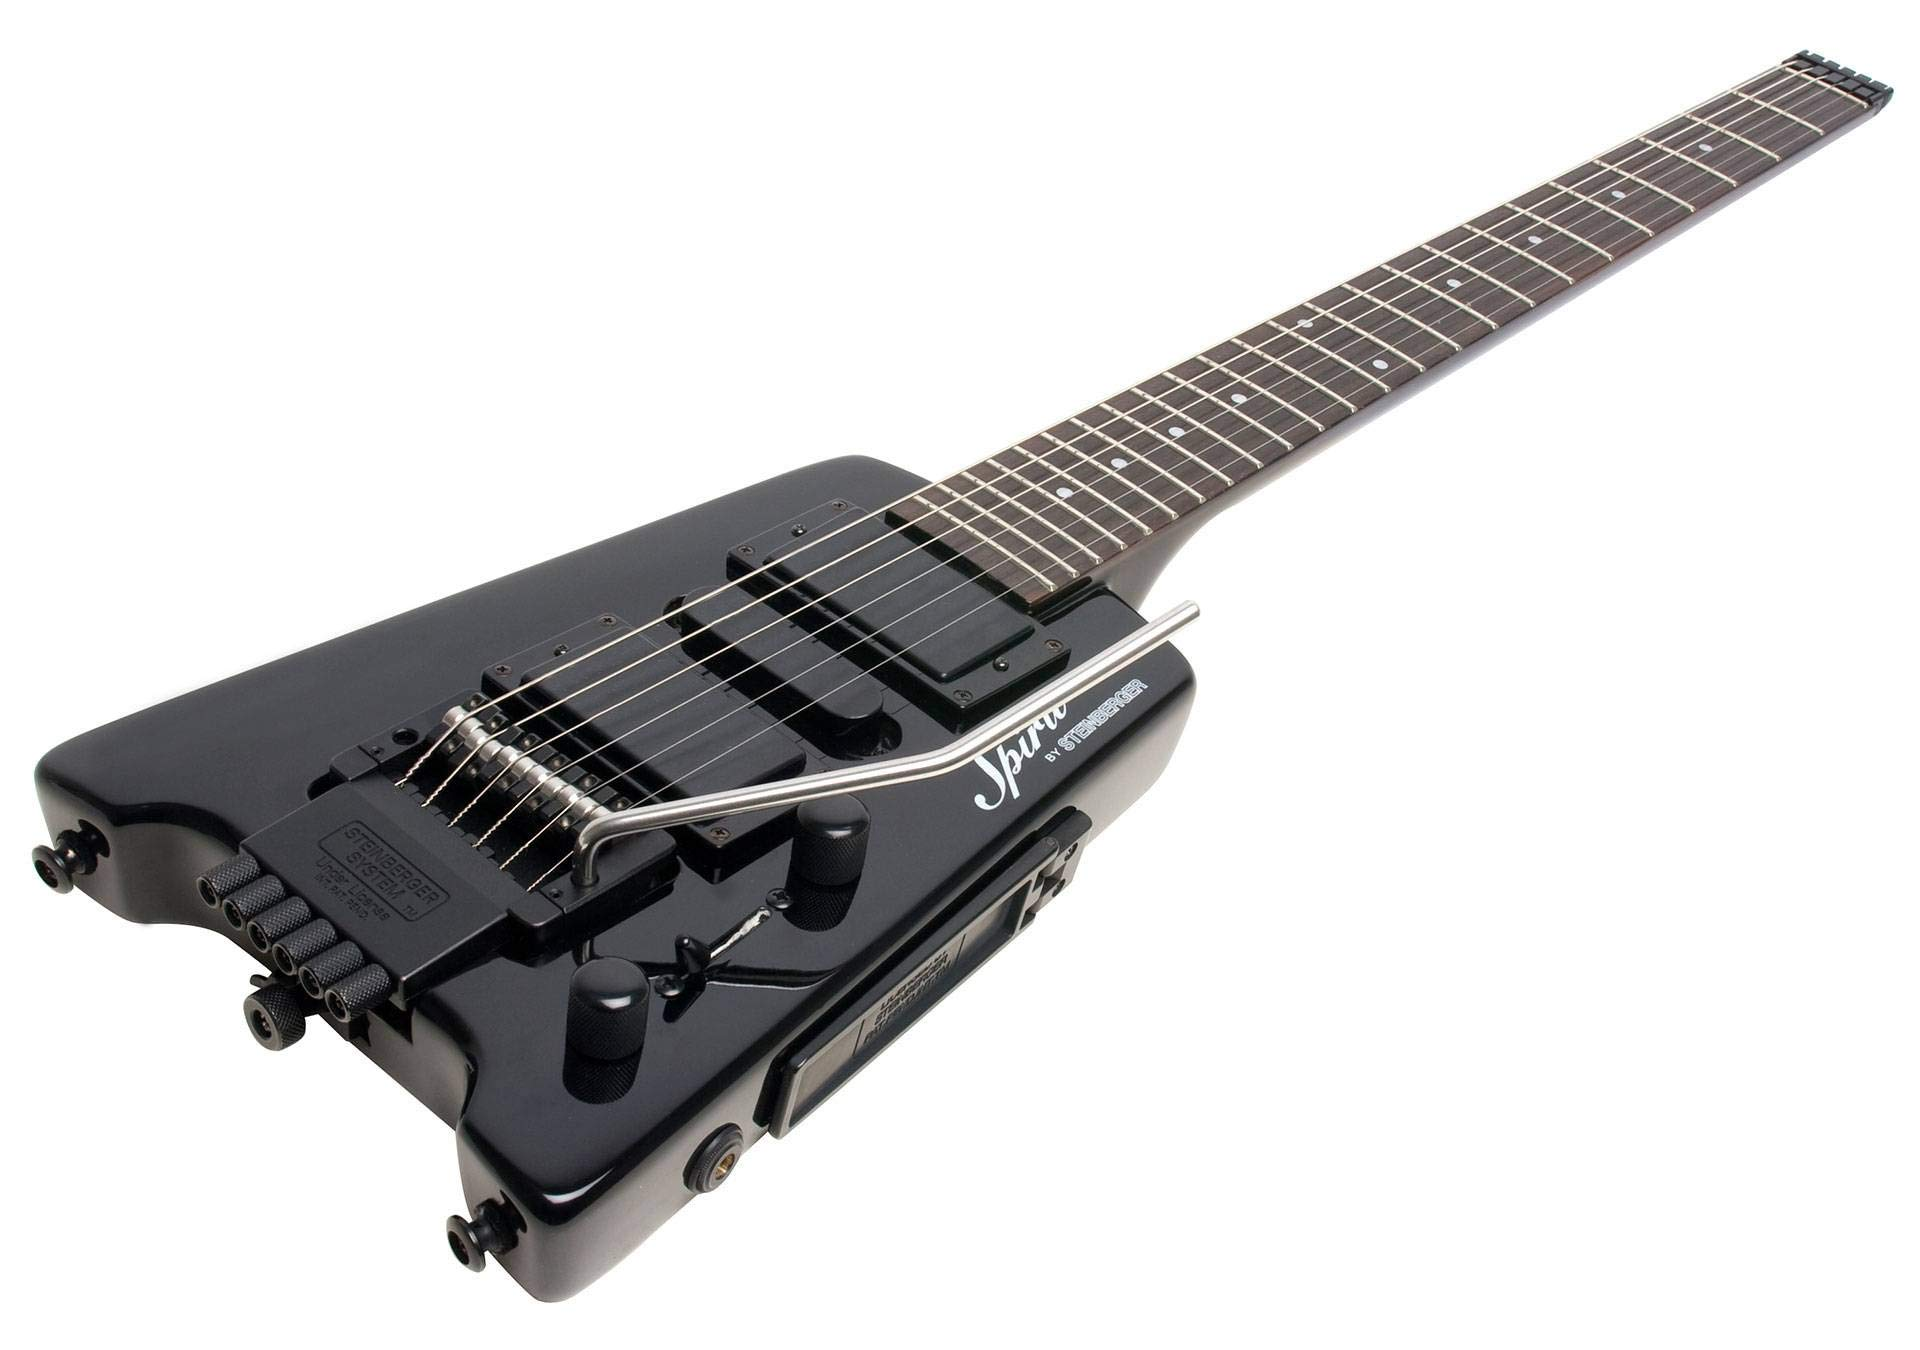 Cheap Steinberger GTPROBK1 Solid-Body Electric Guitar Black Black Friday & Cyber Monday 2019